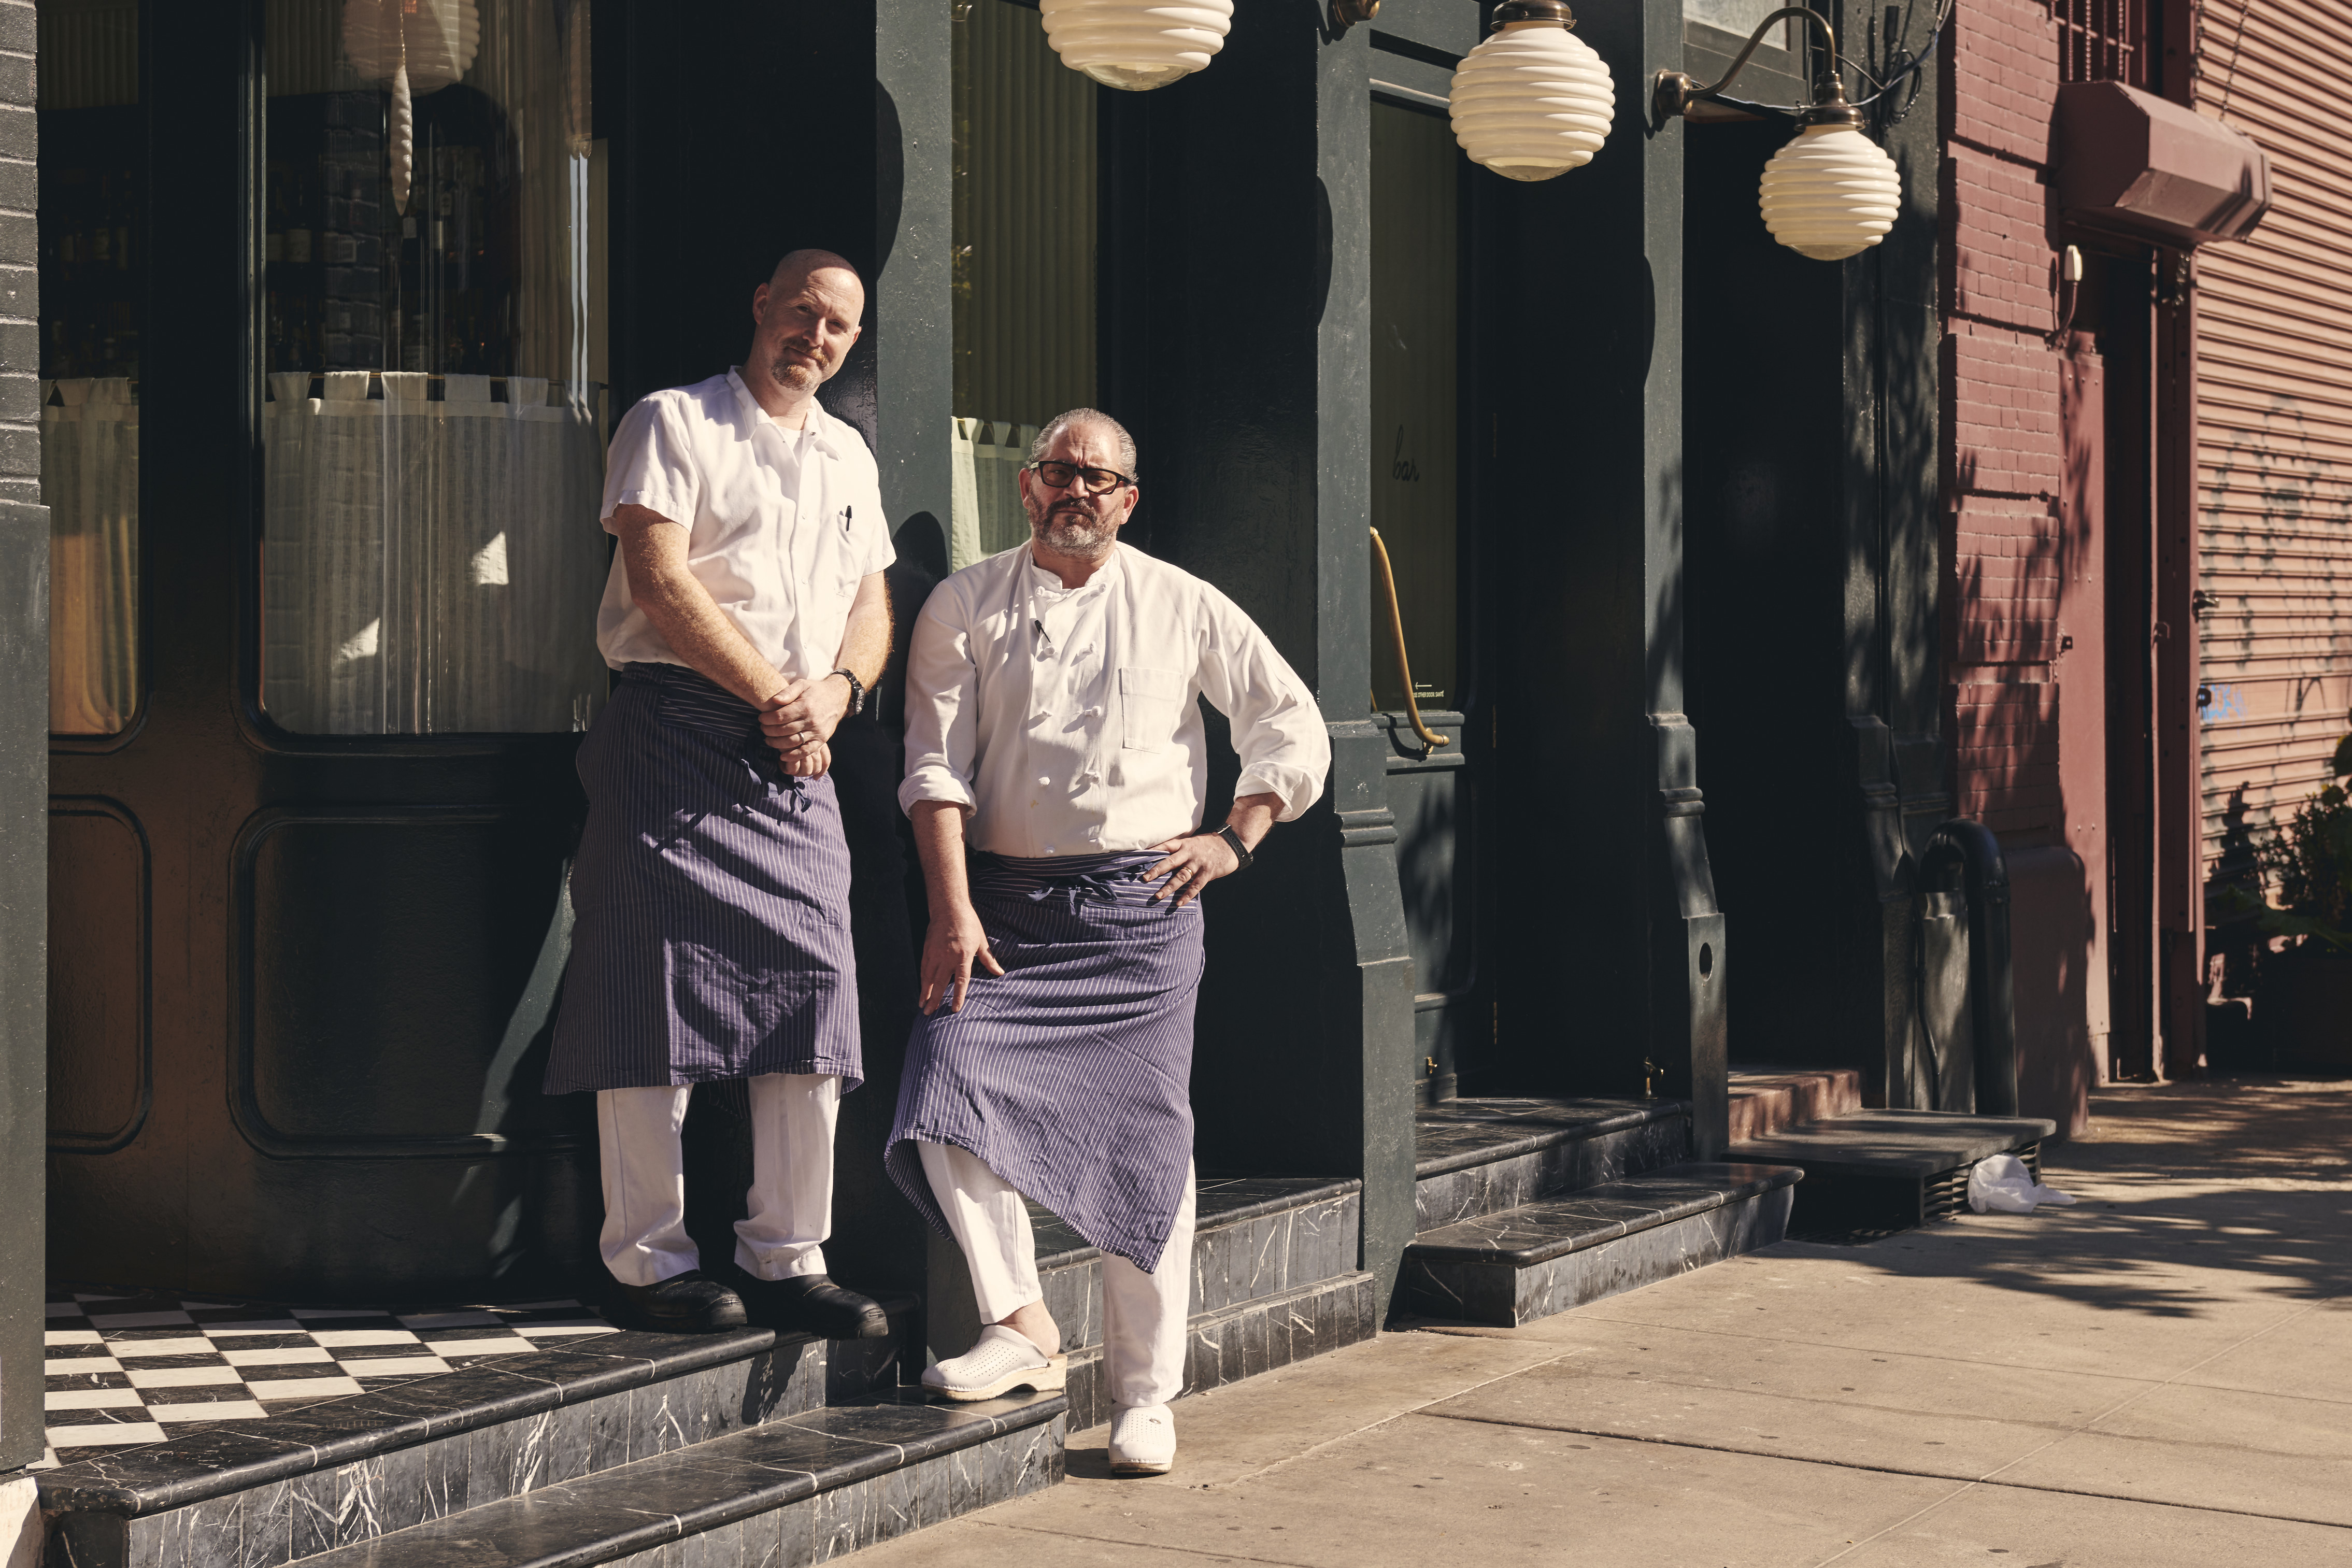 Chefs Lee Hanson and Riad Nasr stand in front of Frenchette, a restaurant that has a black painted front